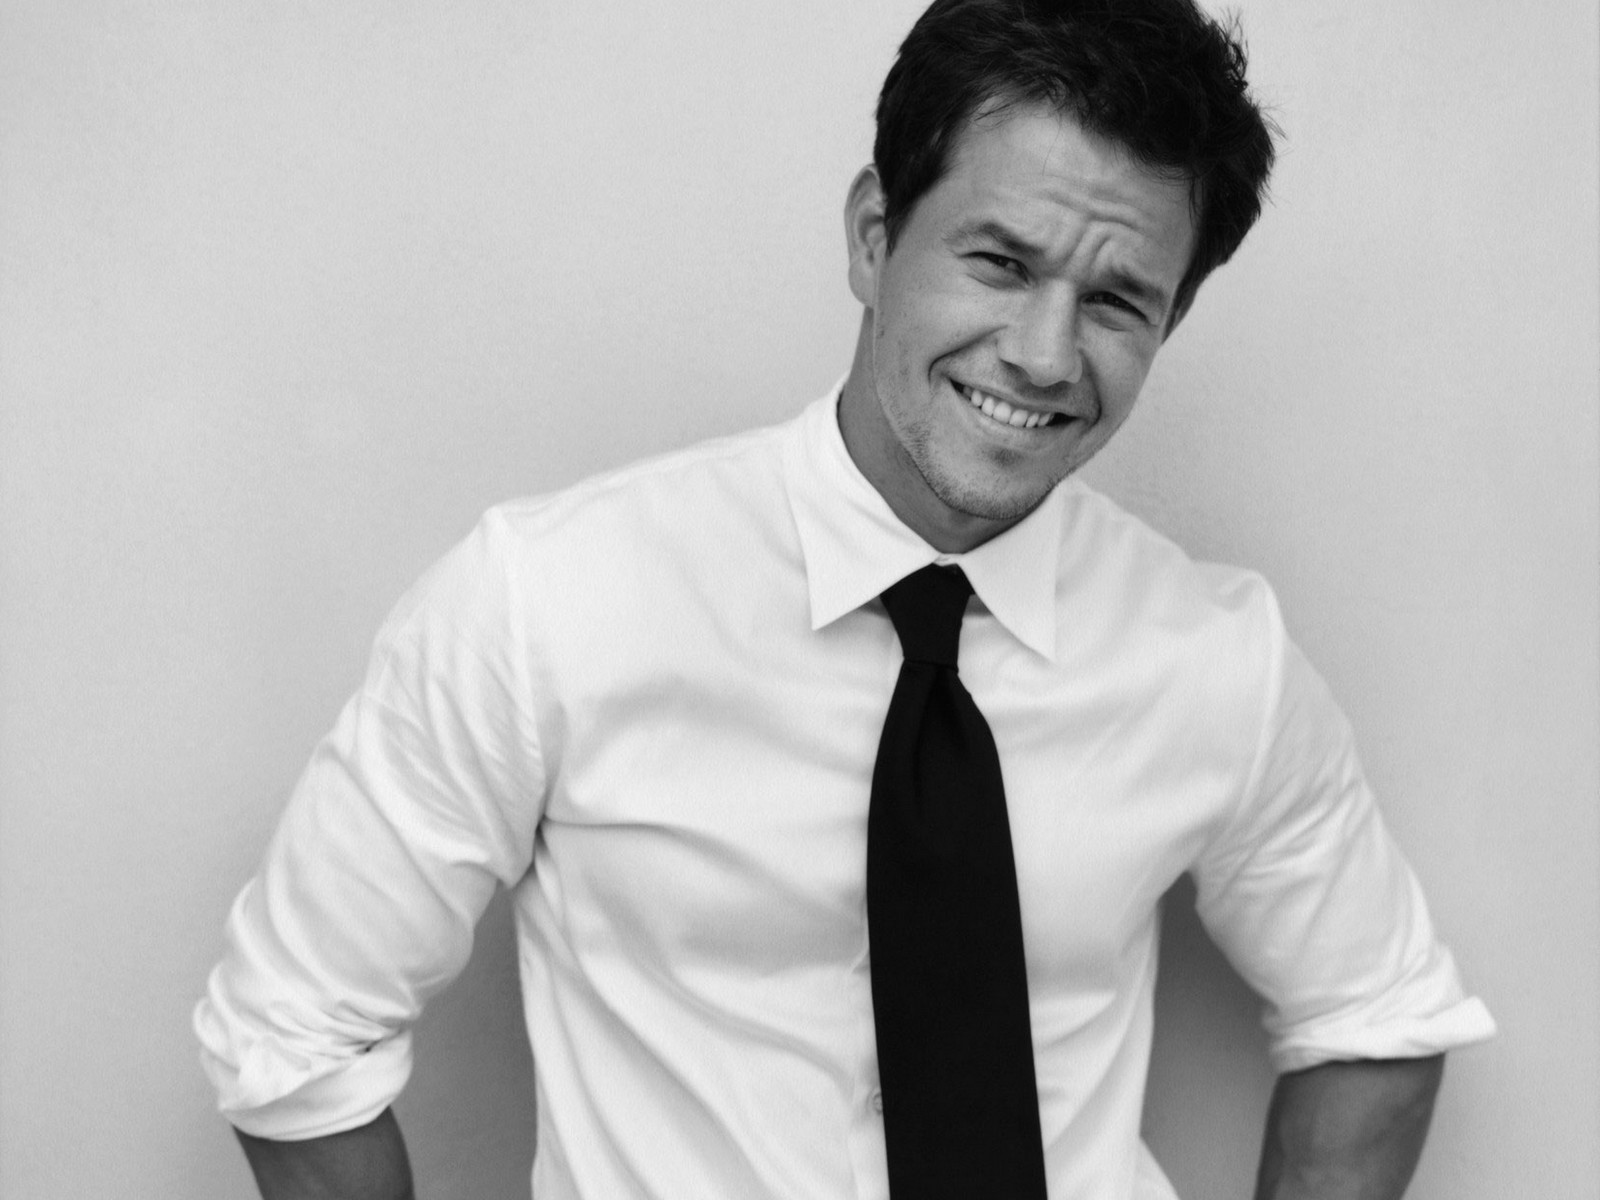 1600x1200 - Mark Wahlberg Wallpapers 4